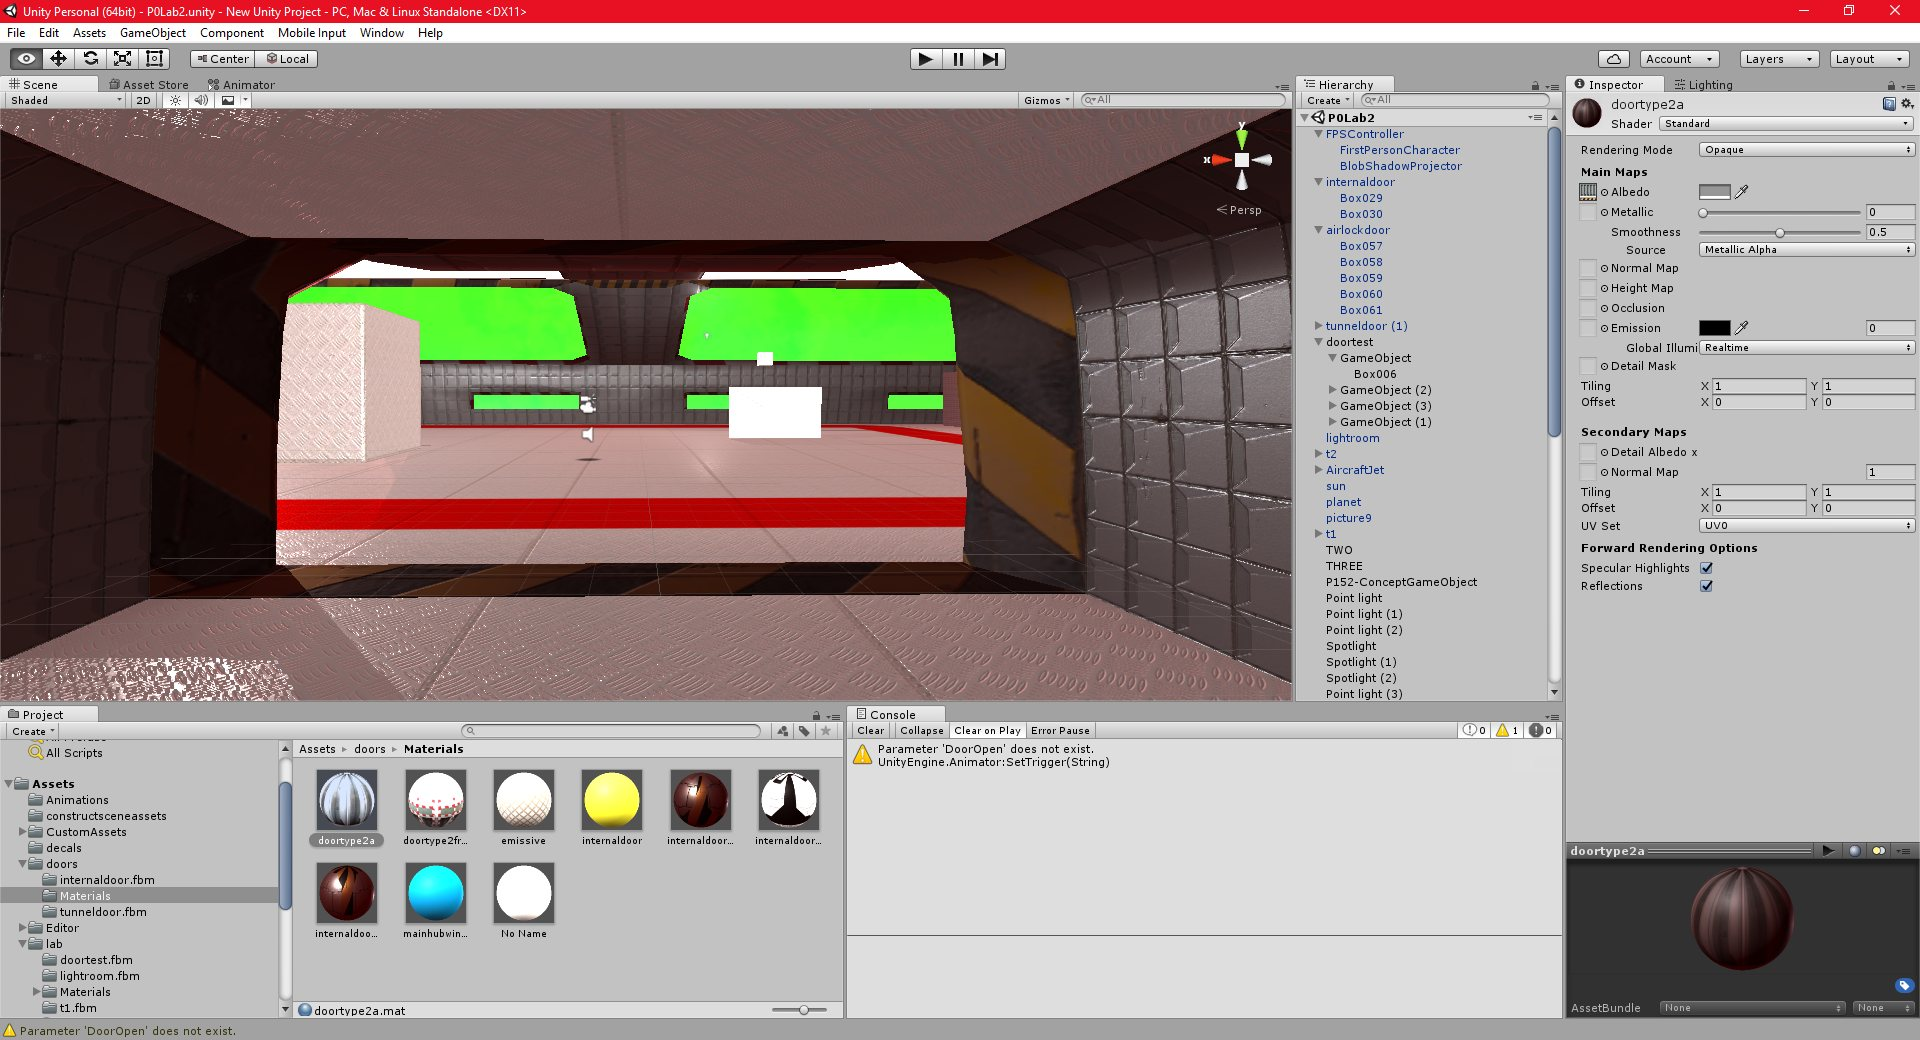 P-172: Unity: Space Environment: Part 19 - PGD Home